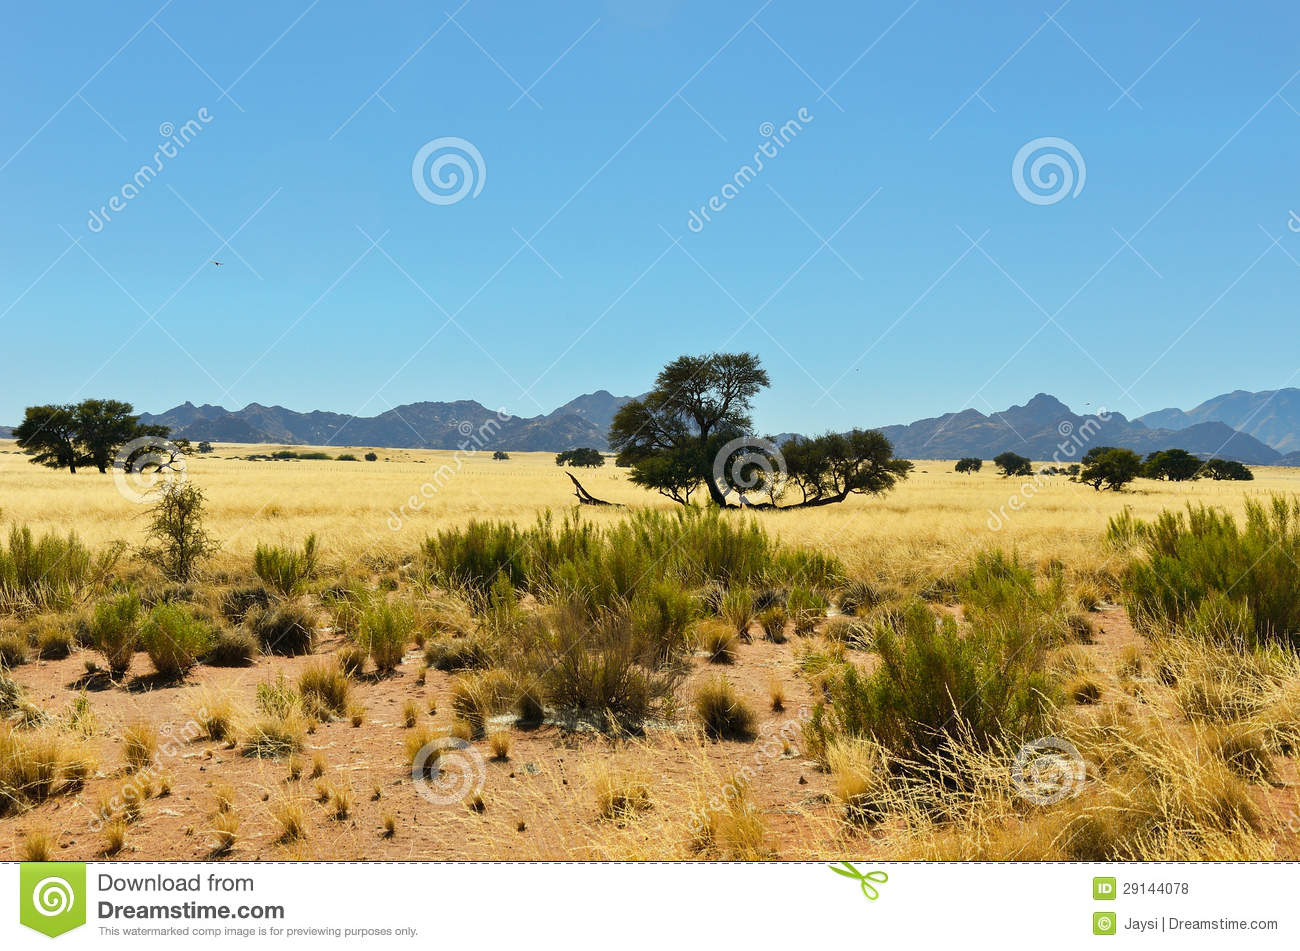 Photo tour of the savannas and mountains of South Africa 81